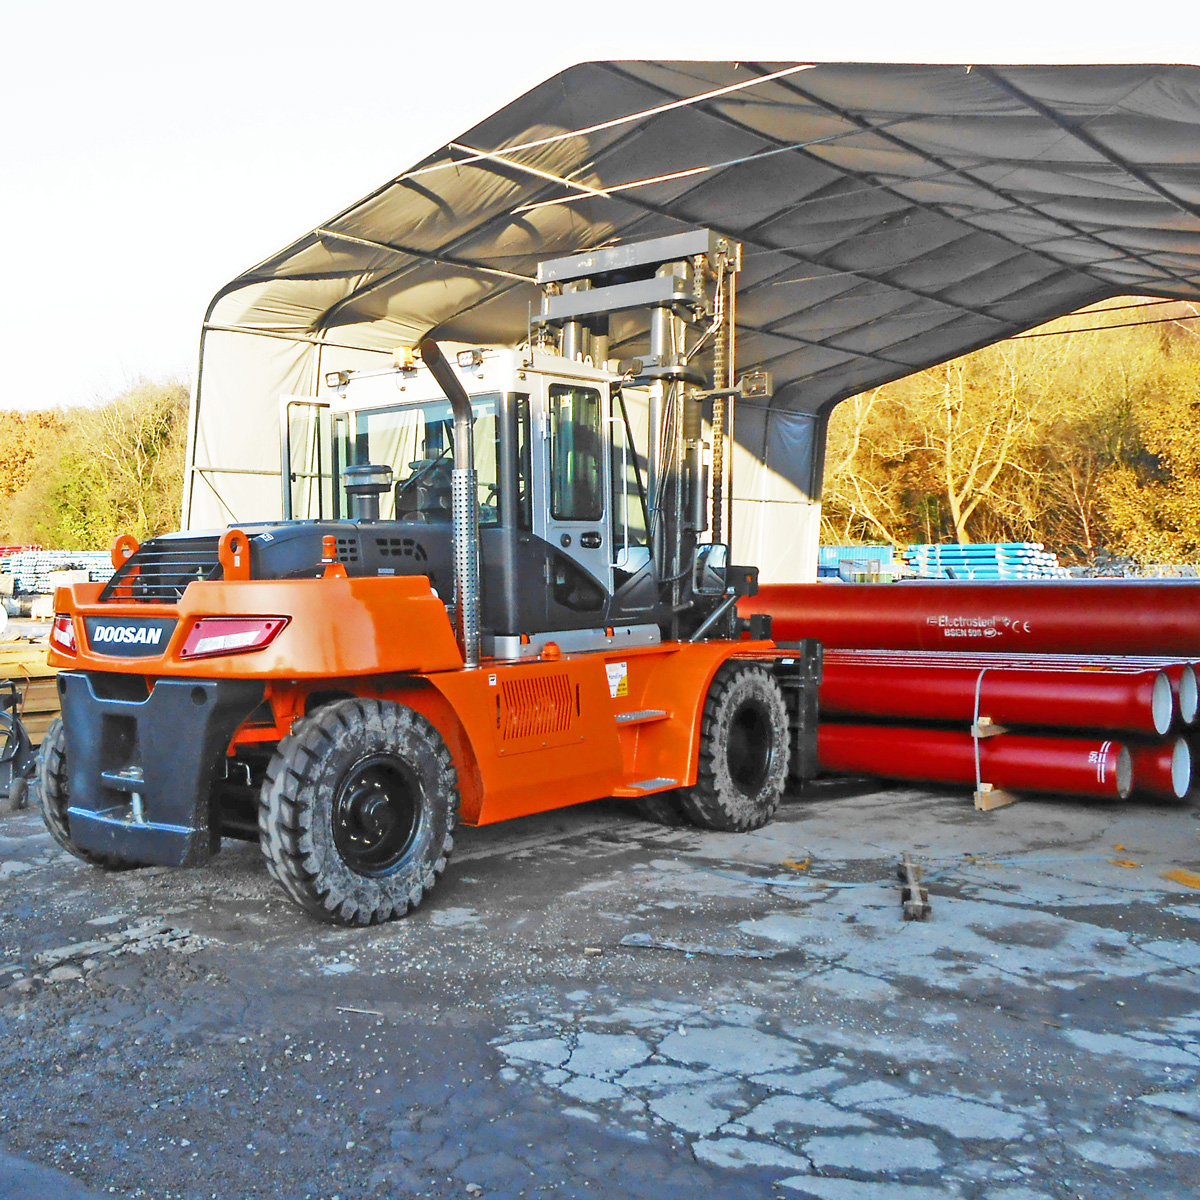 Doosan-D140-on-site